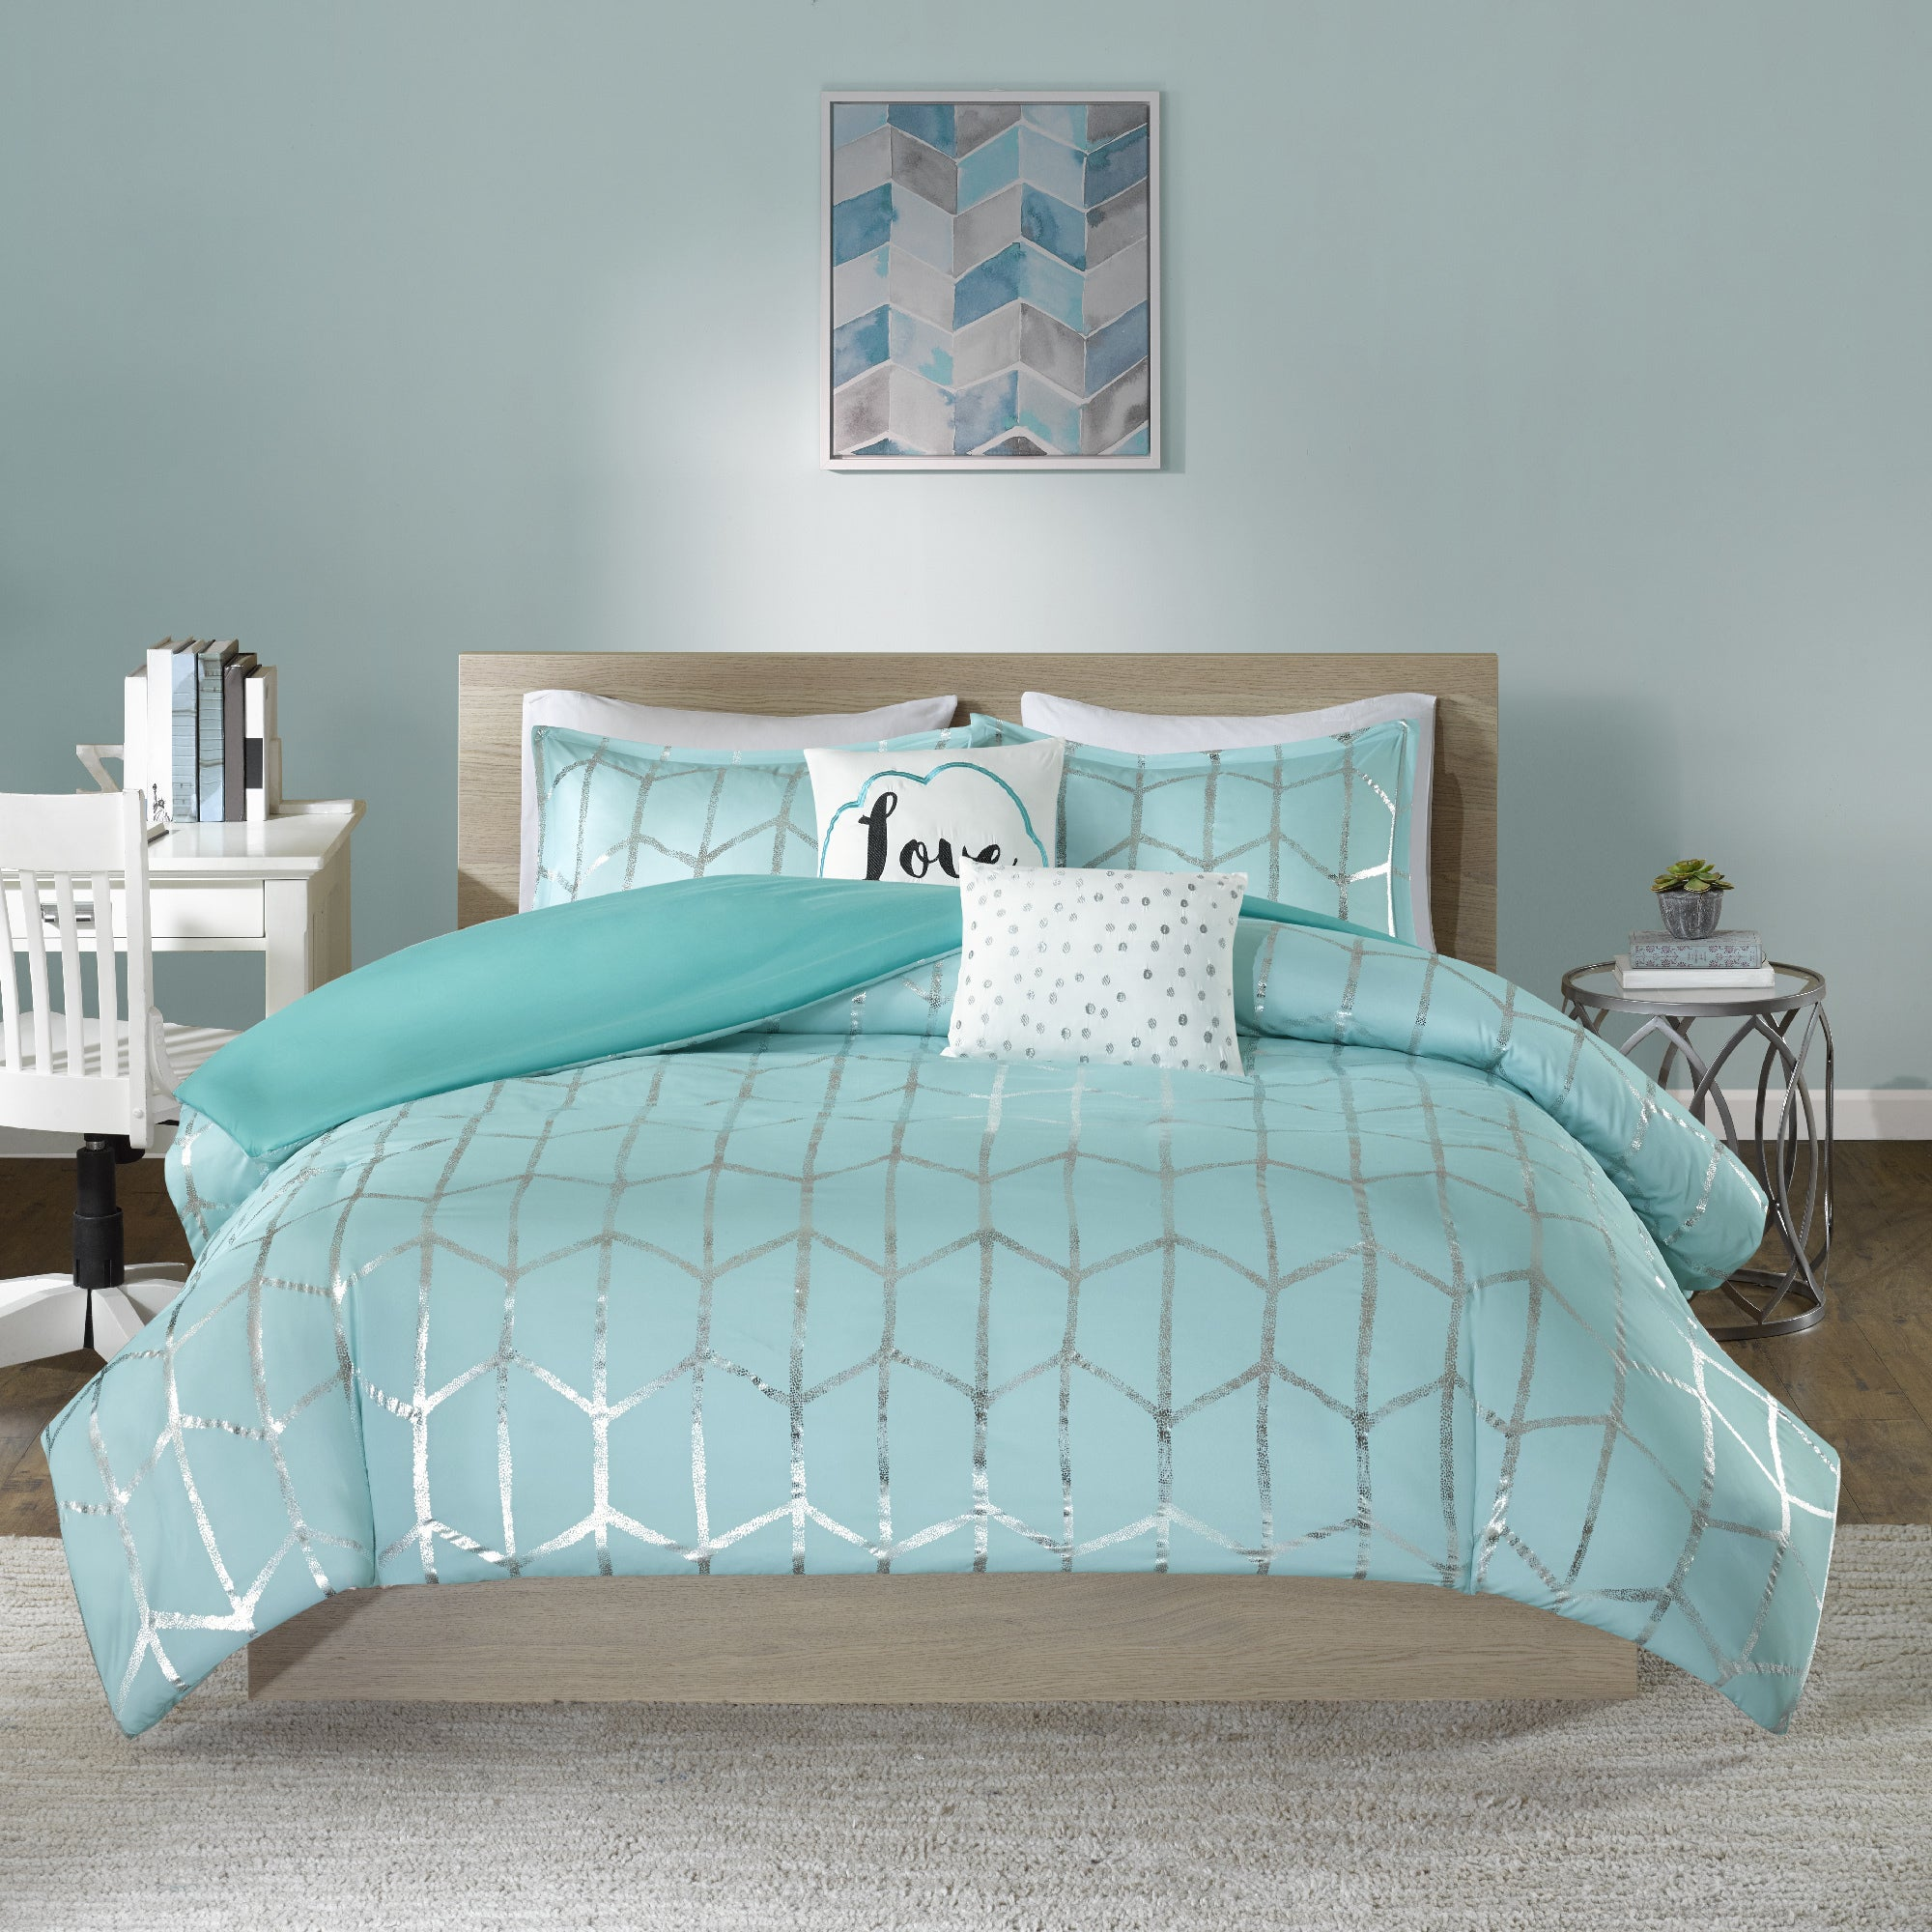 intelligent overstock bedding khloe cover bath piece metallic free shipping duvet silver grey today design set printed product